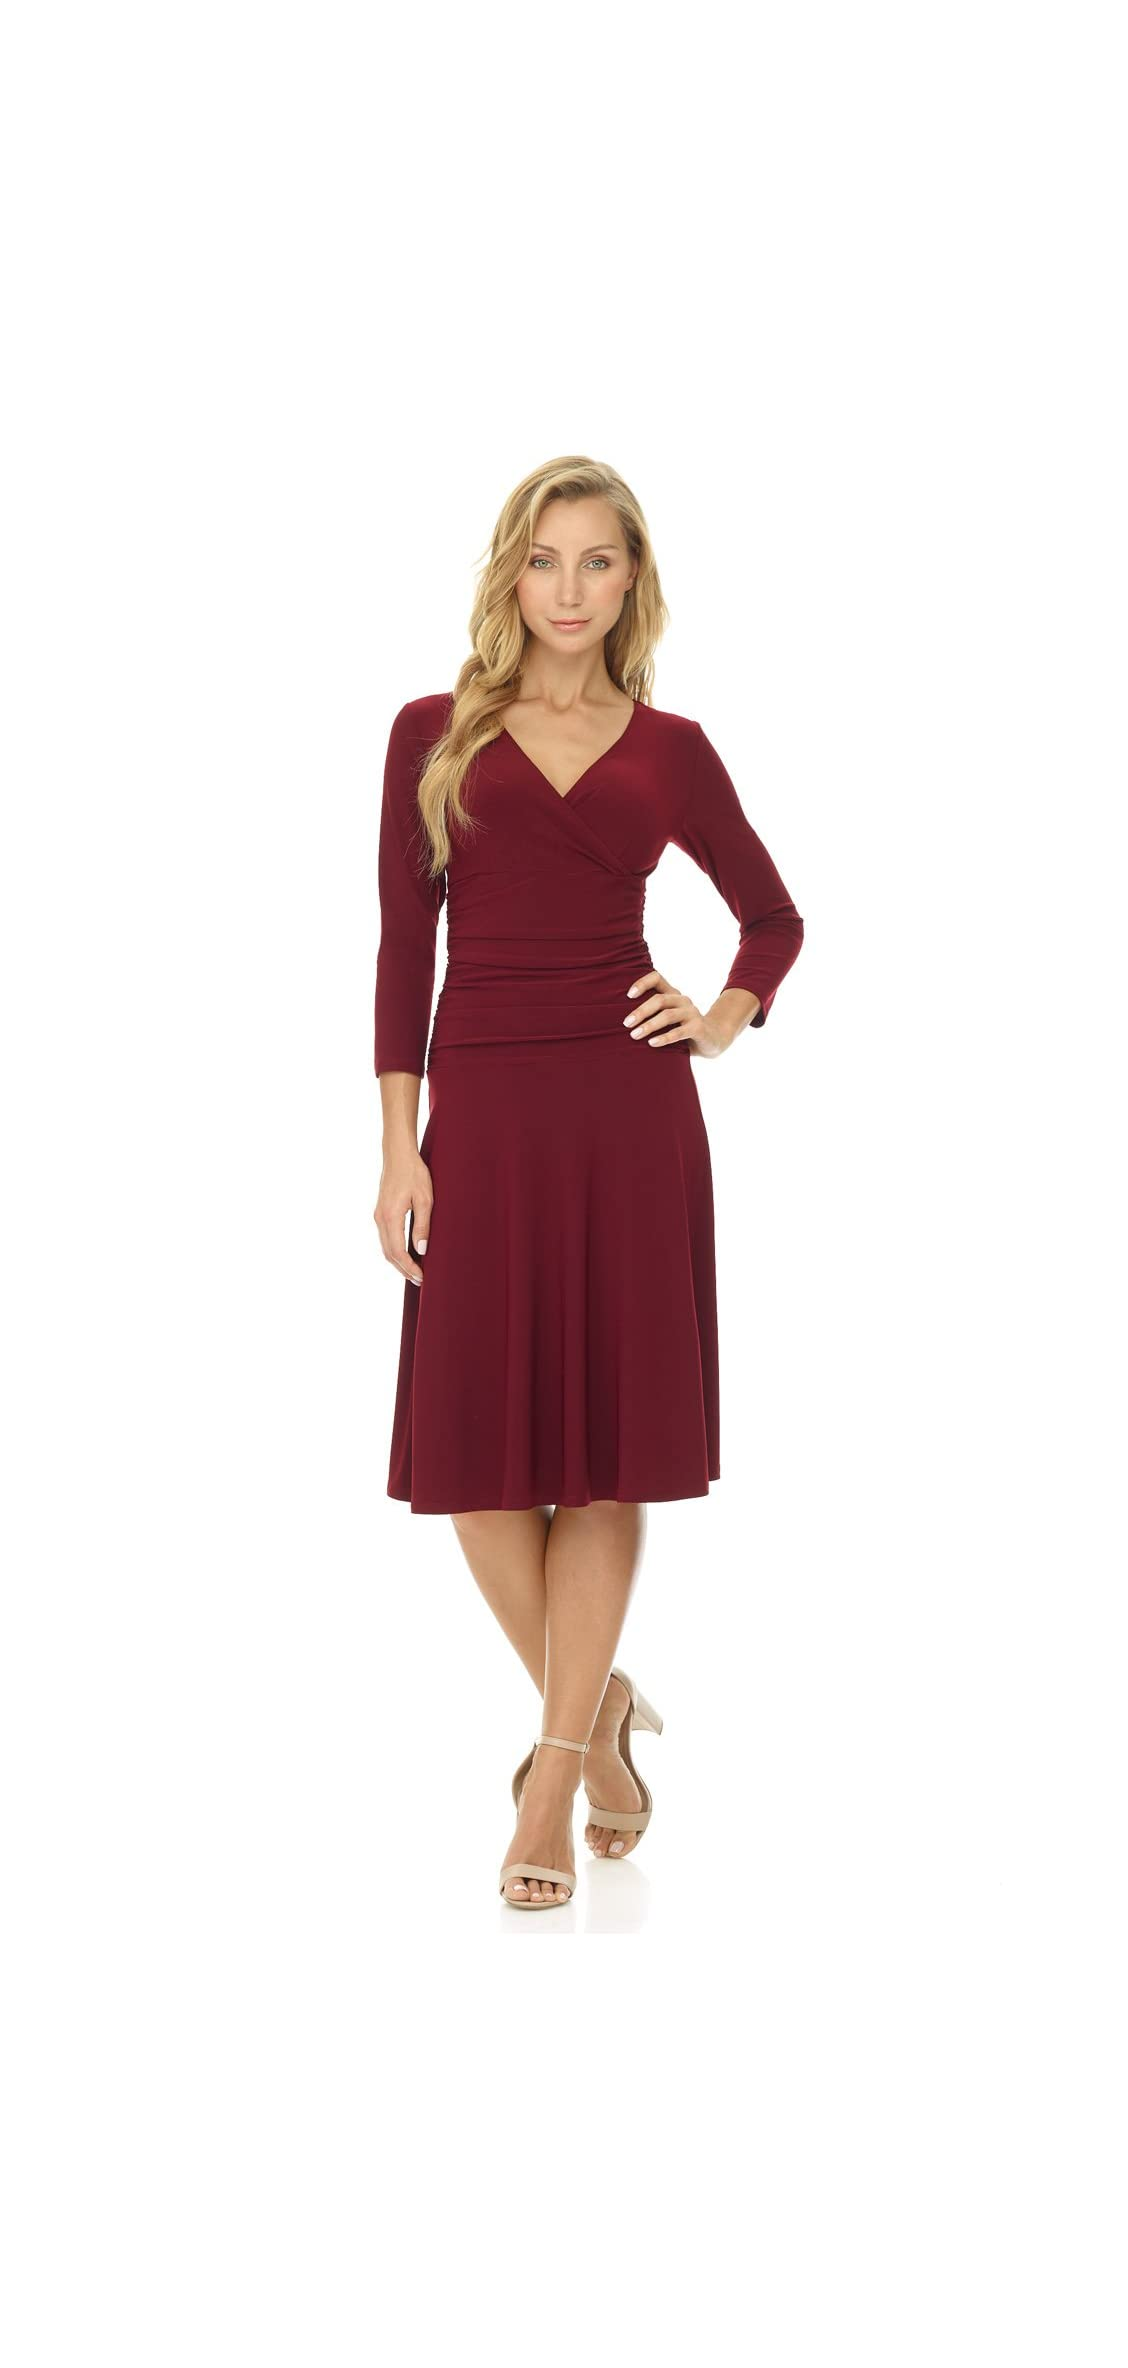 Women's Slimming / Sleeve Fit-and-flare Crossover